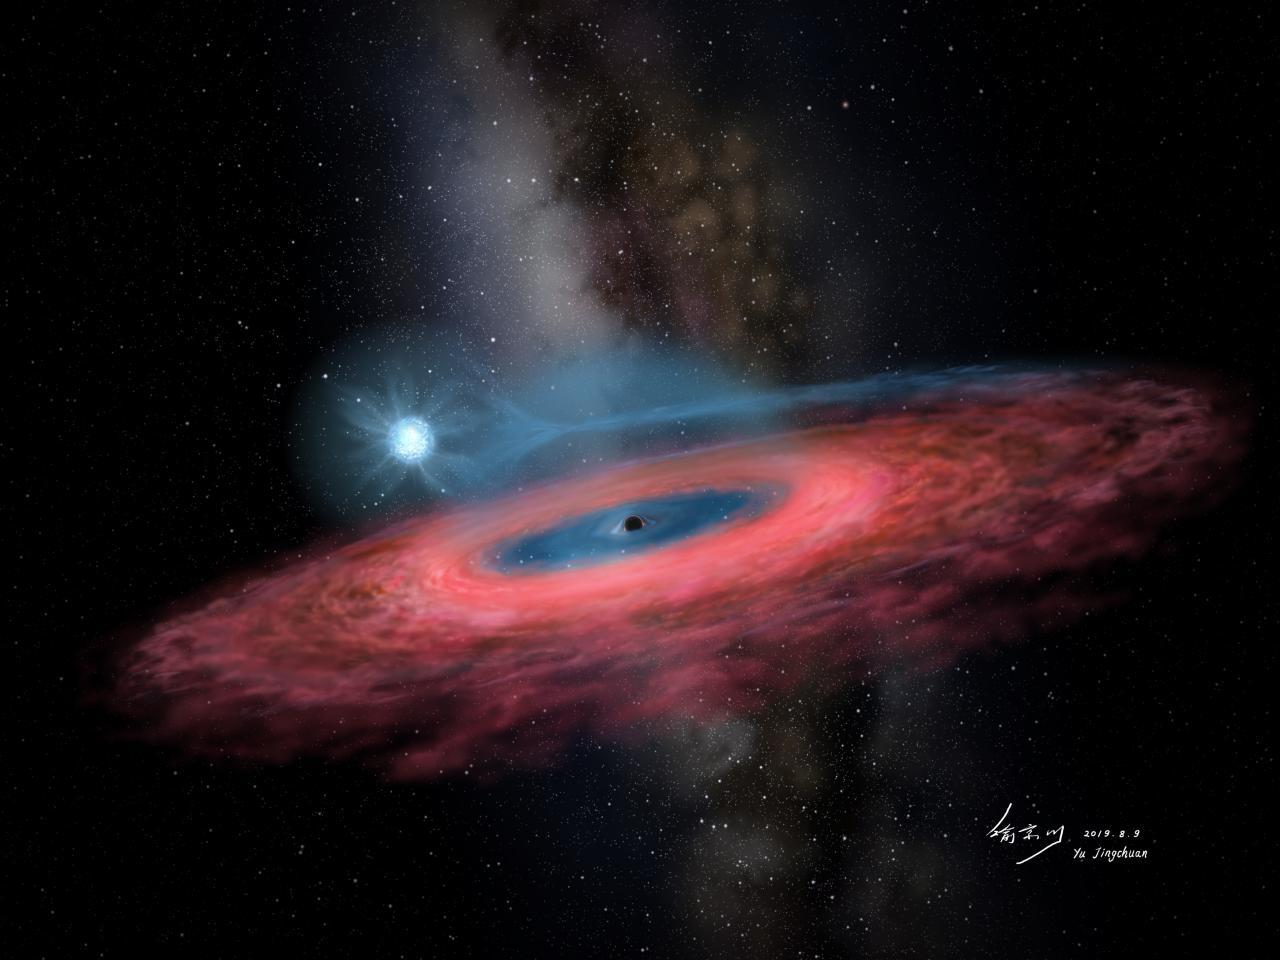 An artist's impression of LB-1, along with its binary star companion